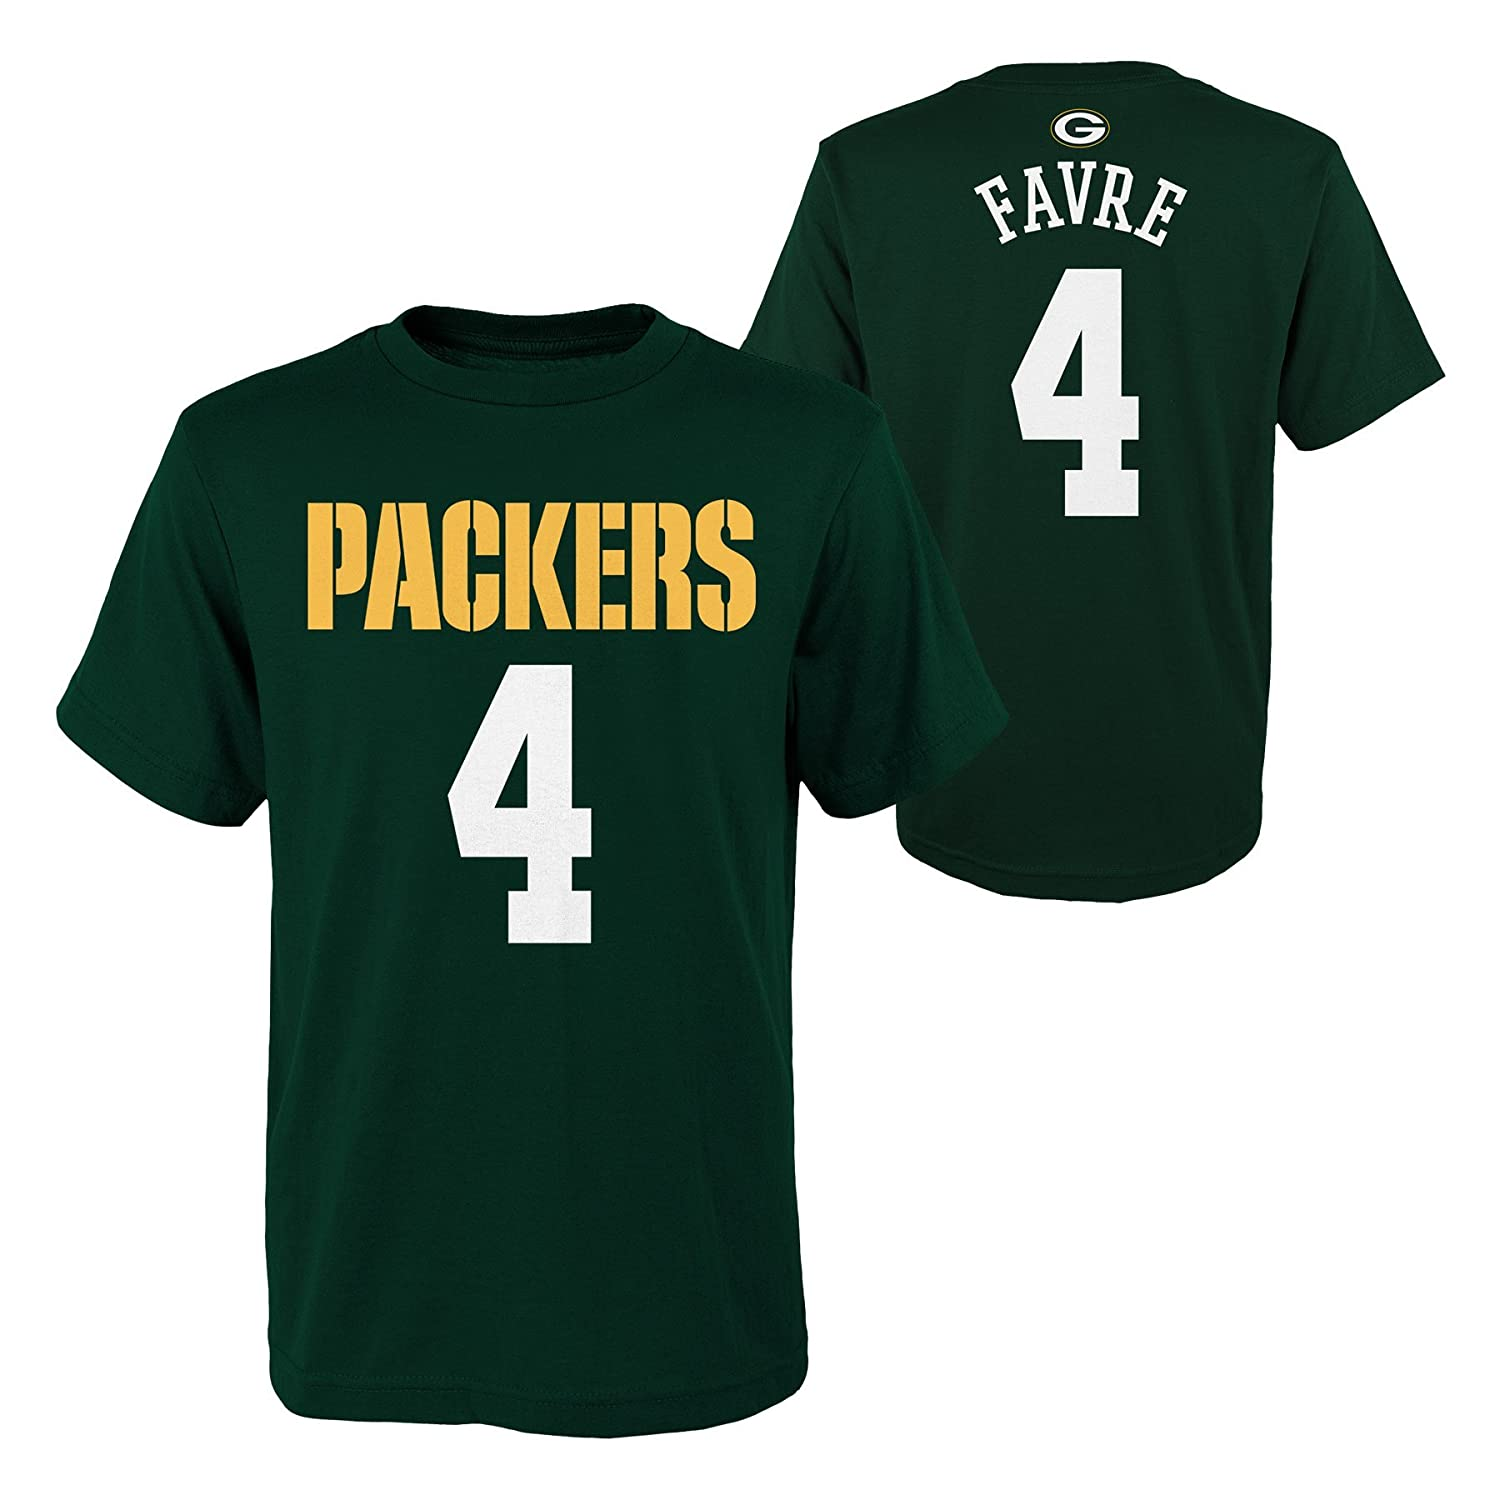 Hunter 10-12 M NFL Green Bay Packers Youth Boys Retired Player Mainliner Name Short Sleeve Tee